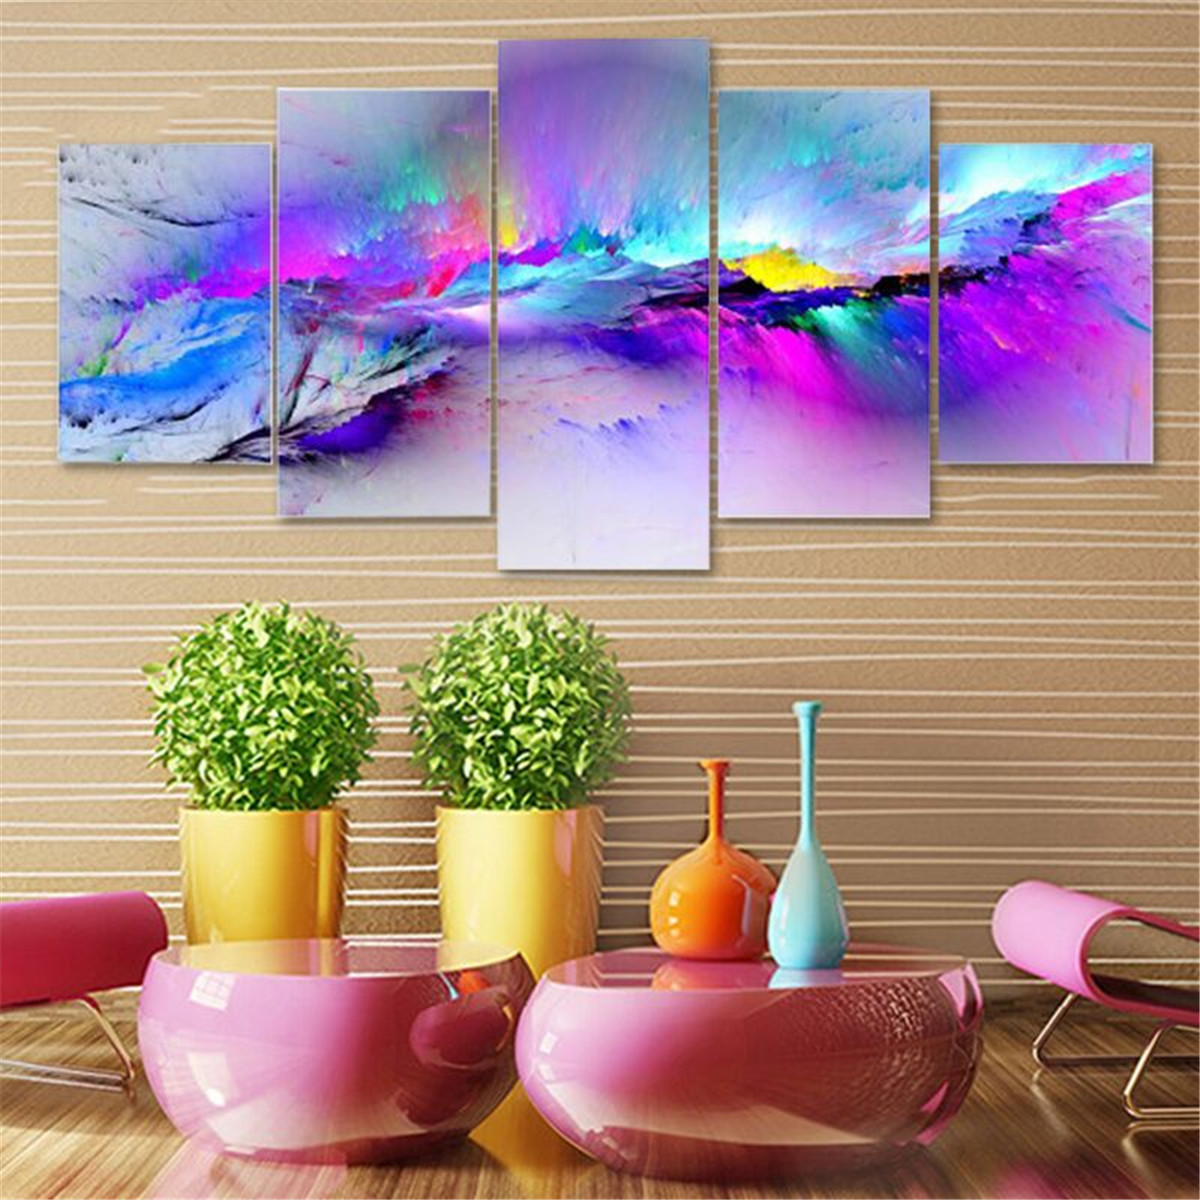 Purple Flower Oil Painting Abstract Wall Art Picture: Flower Modern Abstract Art Canvas Oil Painting Picture